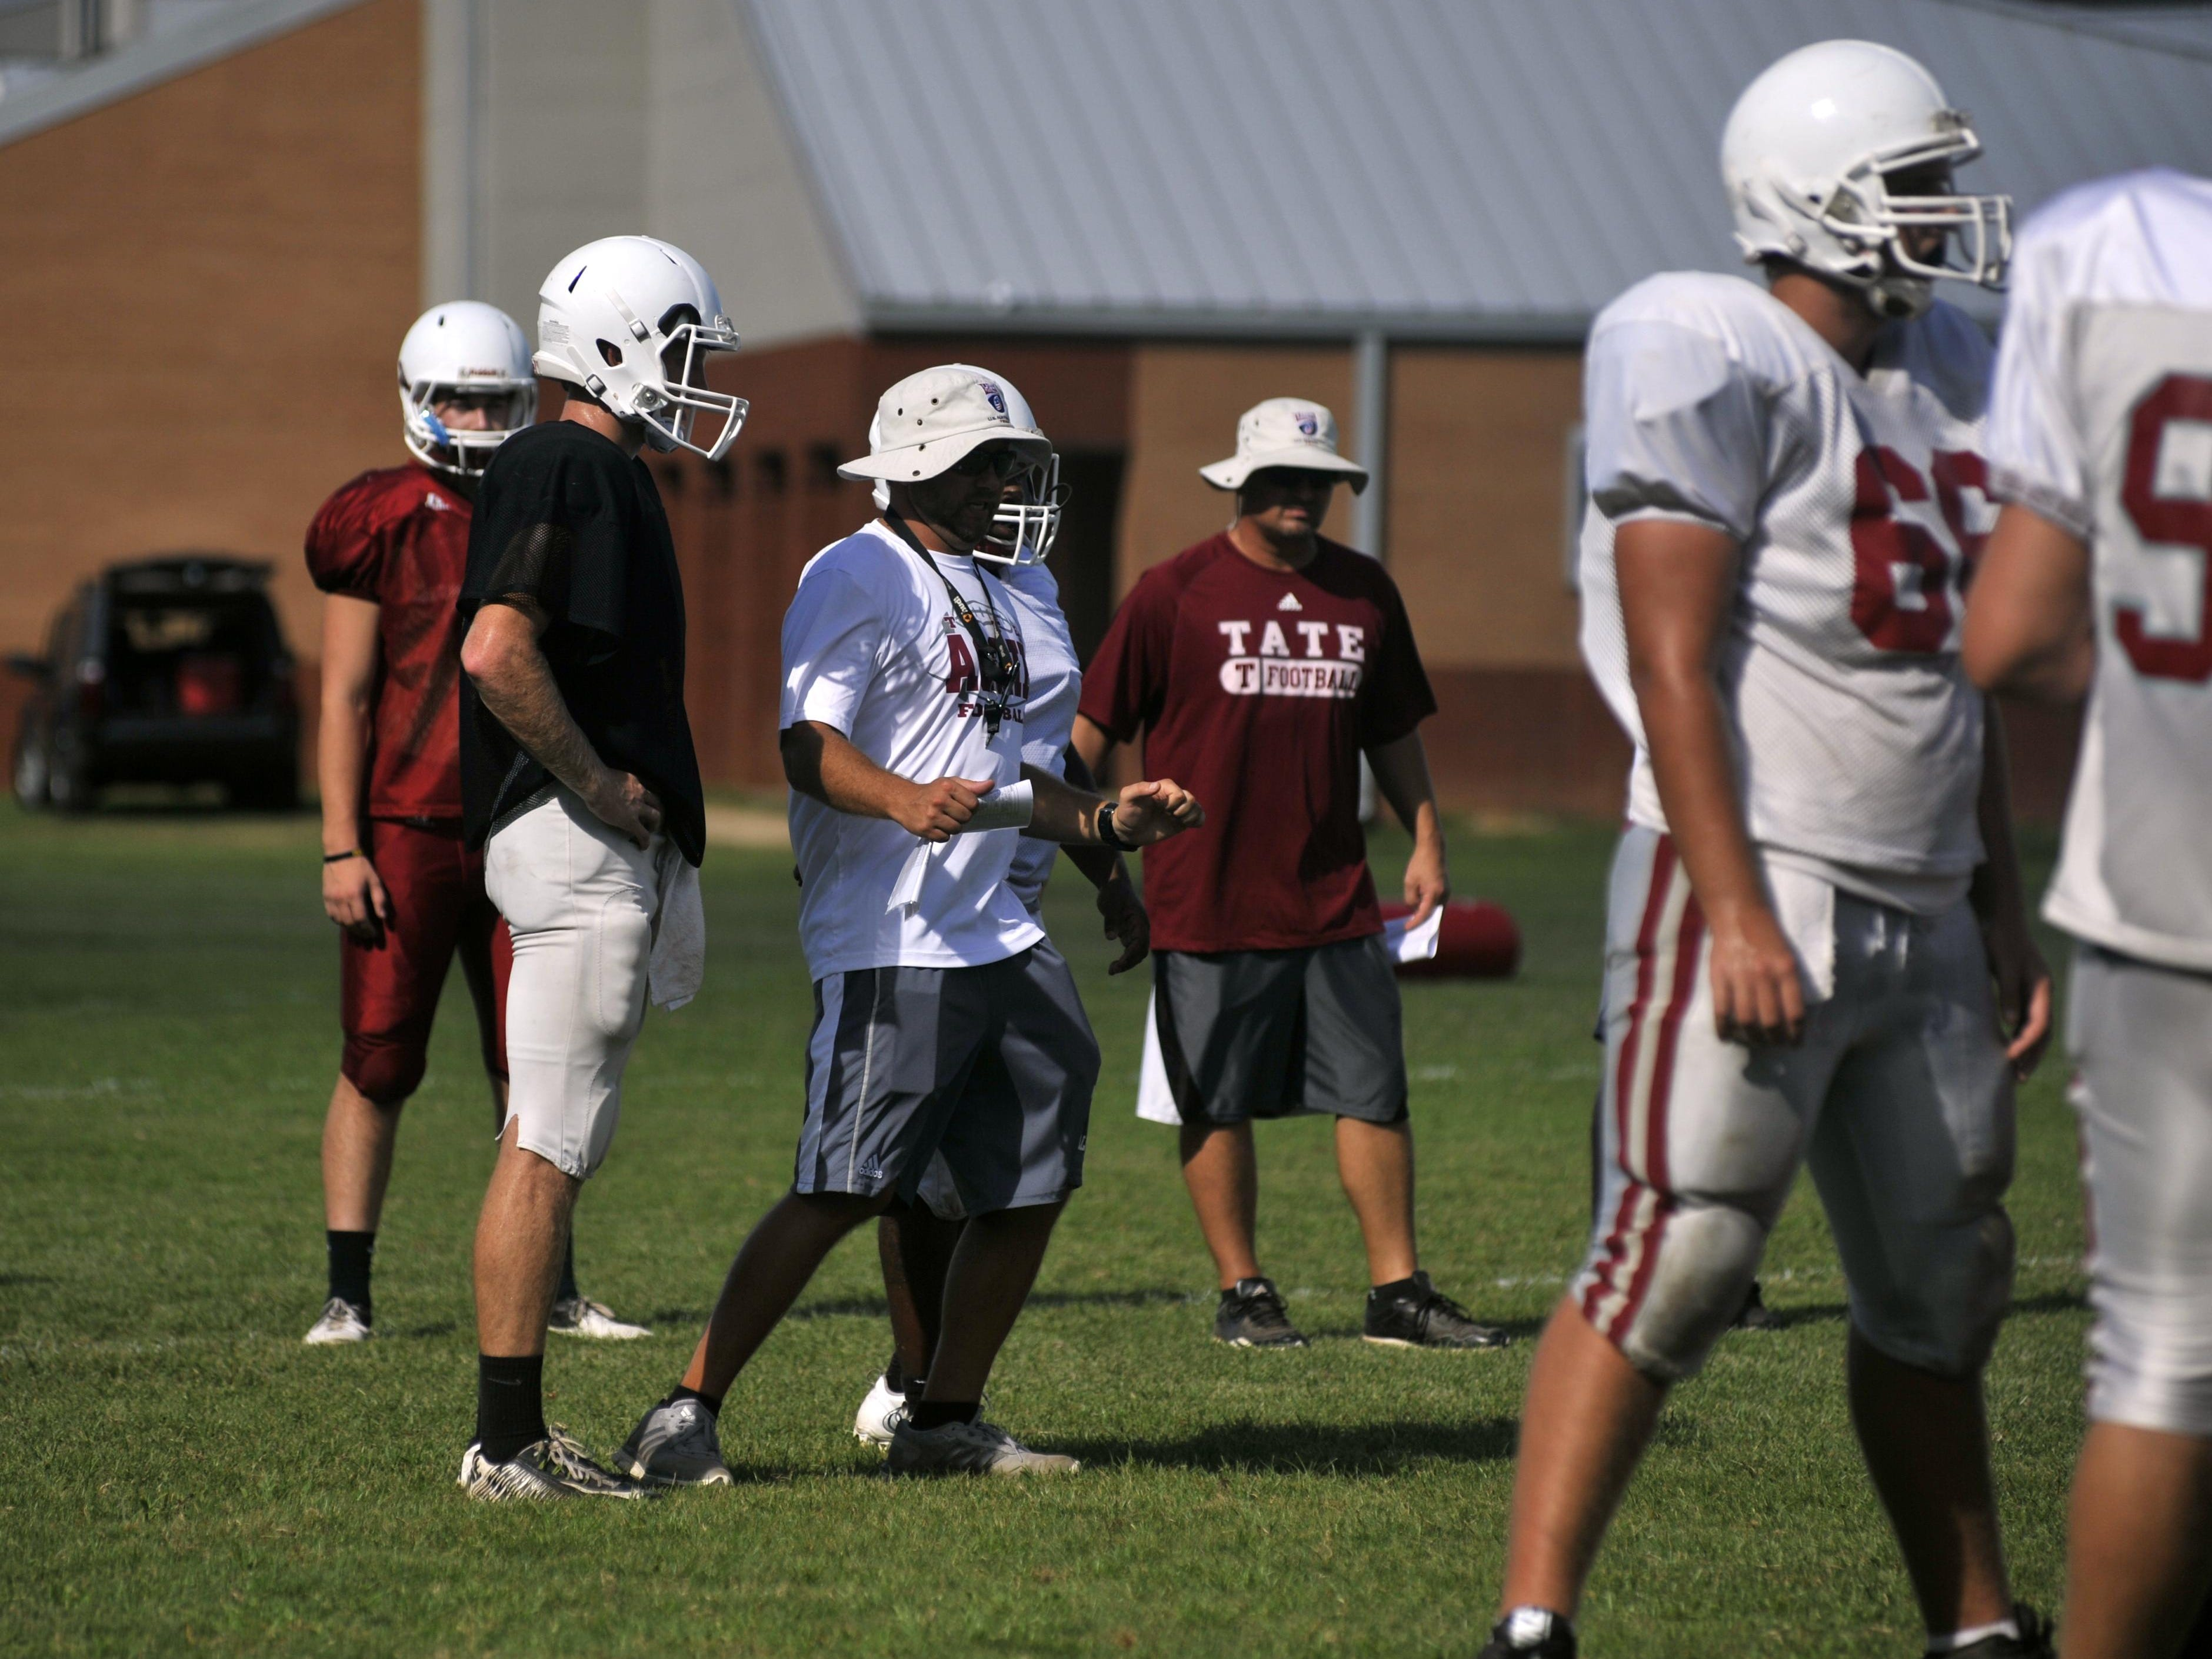 Tate head coach Jay Lindsey (center) instructs starting quarterback Jake Henry (black) during practice on Aug. 16, 2016.